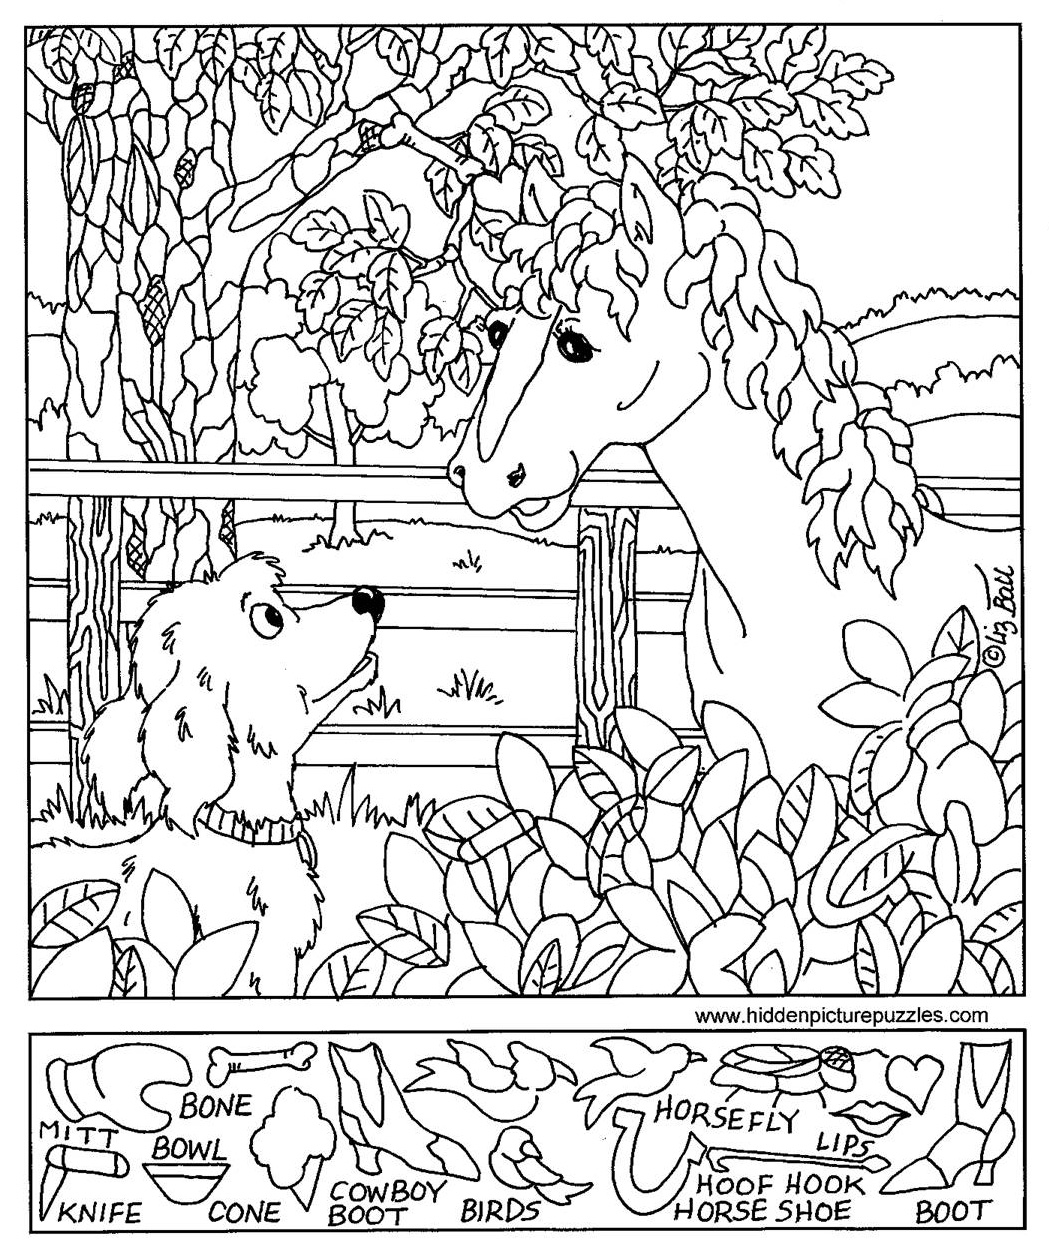 hight resolution of Hidden Pictures Page - Print your Hidden Pictures Horse Dog page   All Kids  Network